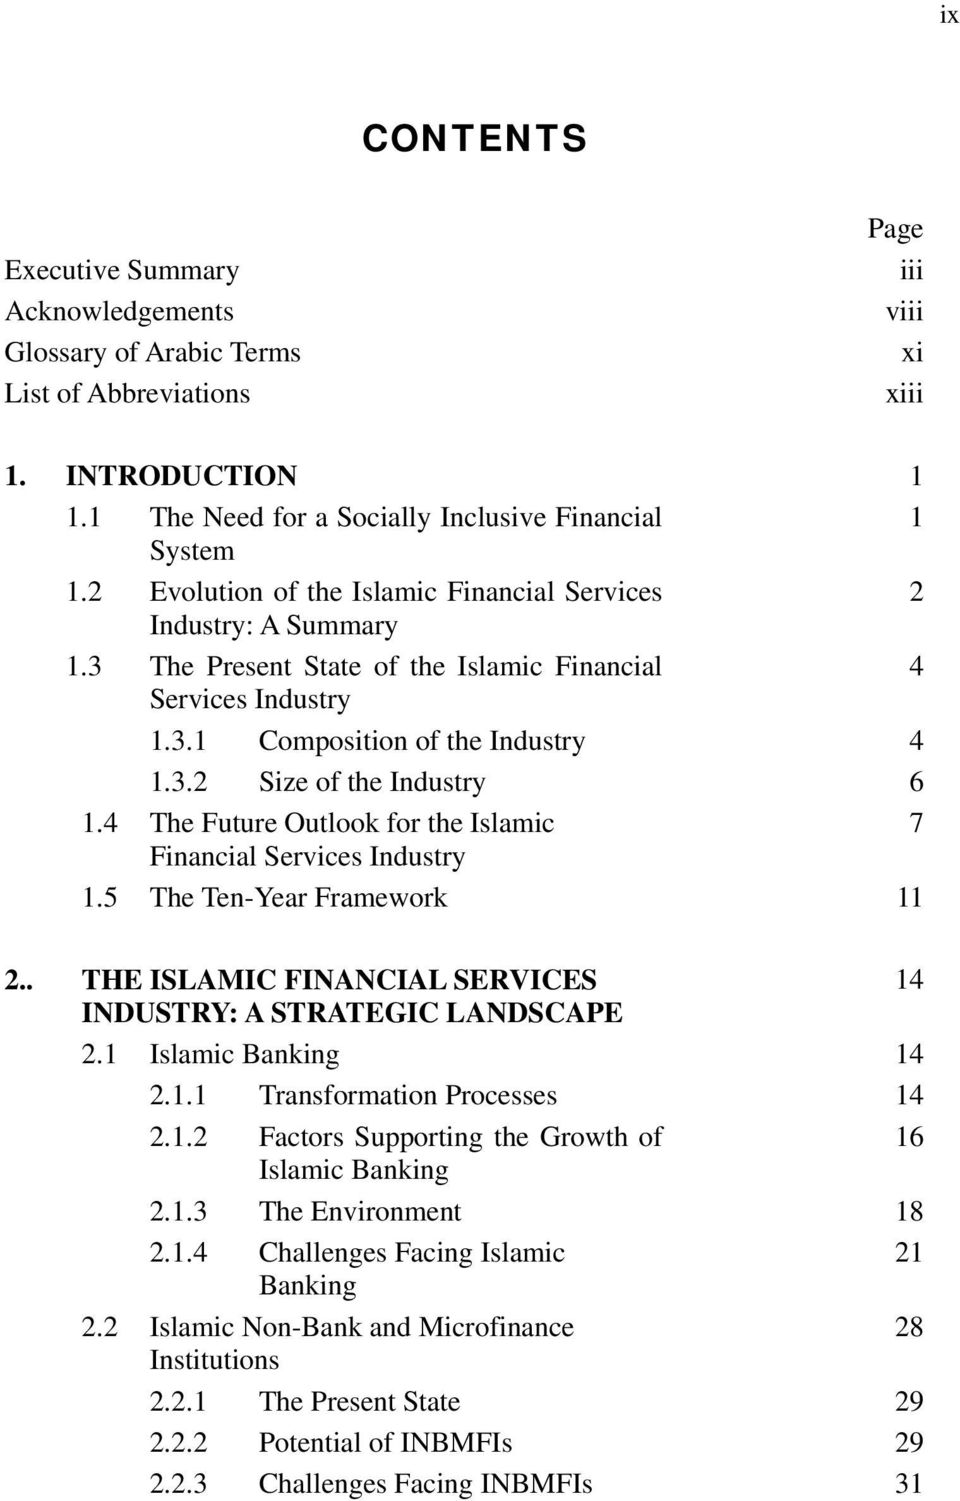 4 The Future Outlook for the Islamic 7 Financial Services Industry 1.5 The Ten-Year Framework 11 2.. THE ISLAMIC FINANCIAL SERVICES 14 INDUSTRY: A STRATEGIC LANDSCAPE 2.1 Islamic Banking 14 2.1.1 Transformation Processes 14 2.